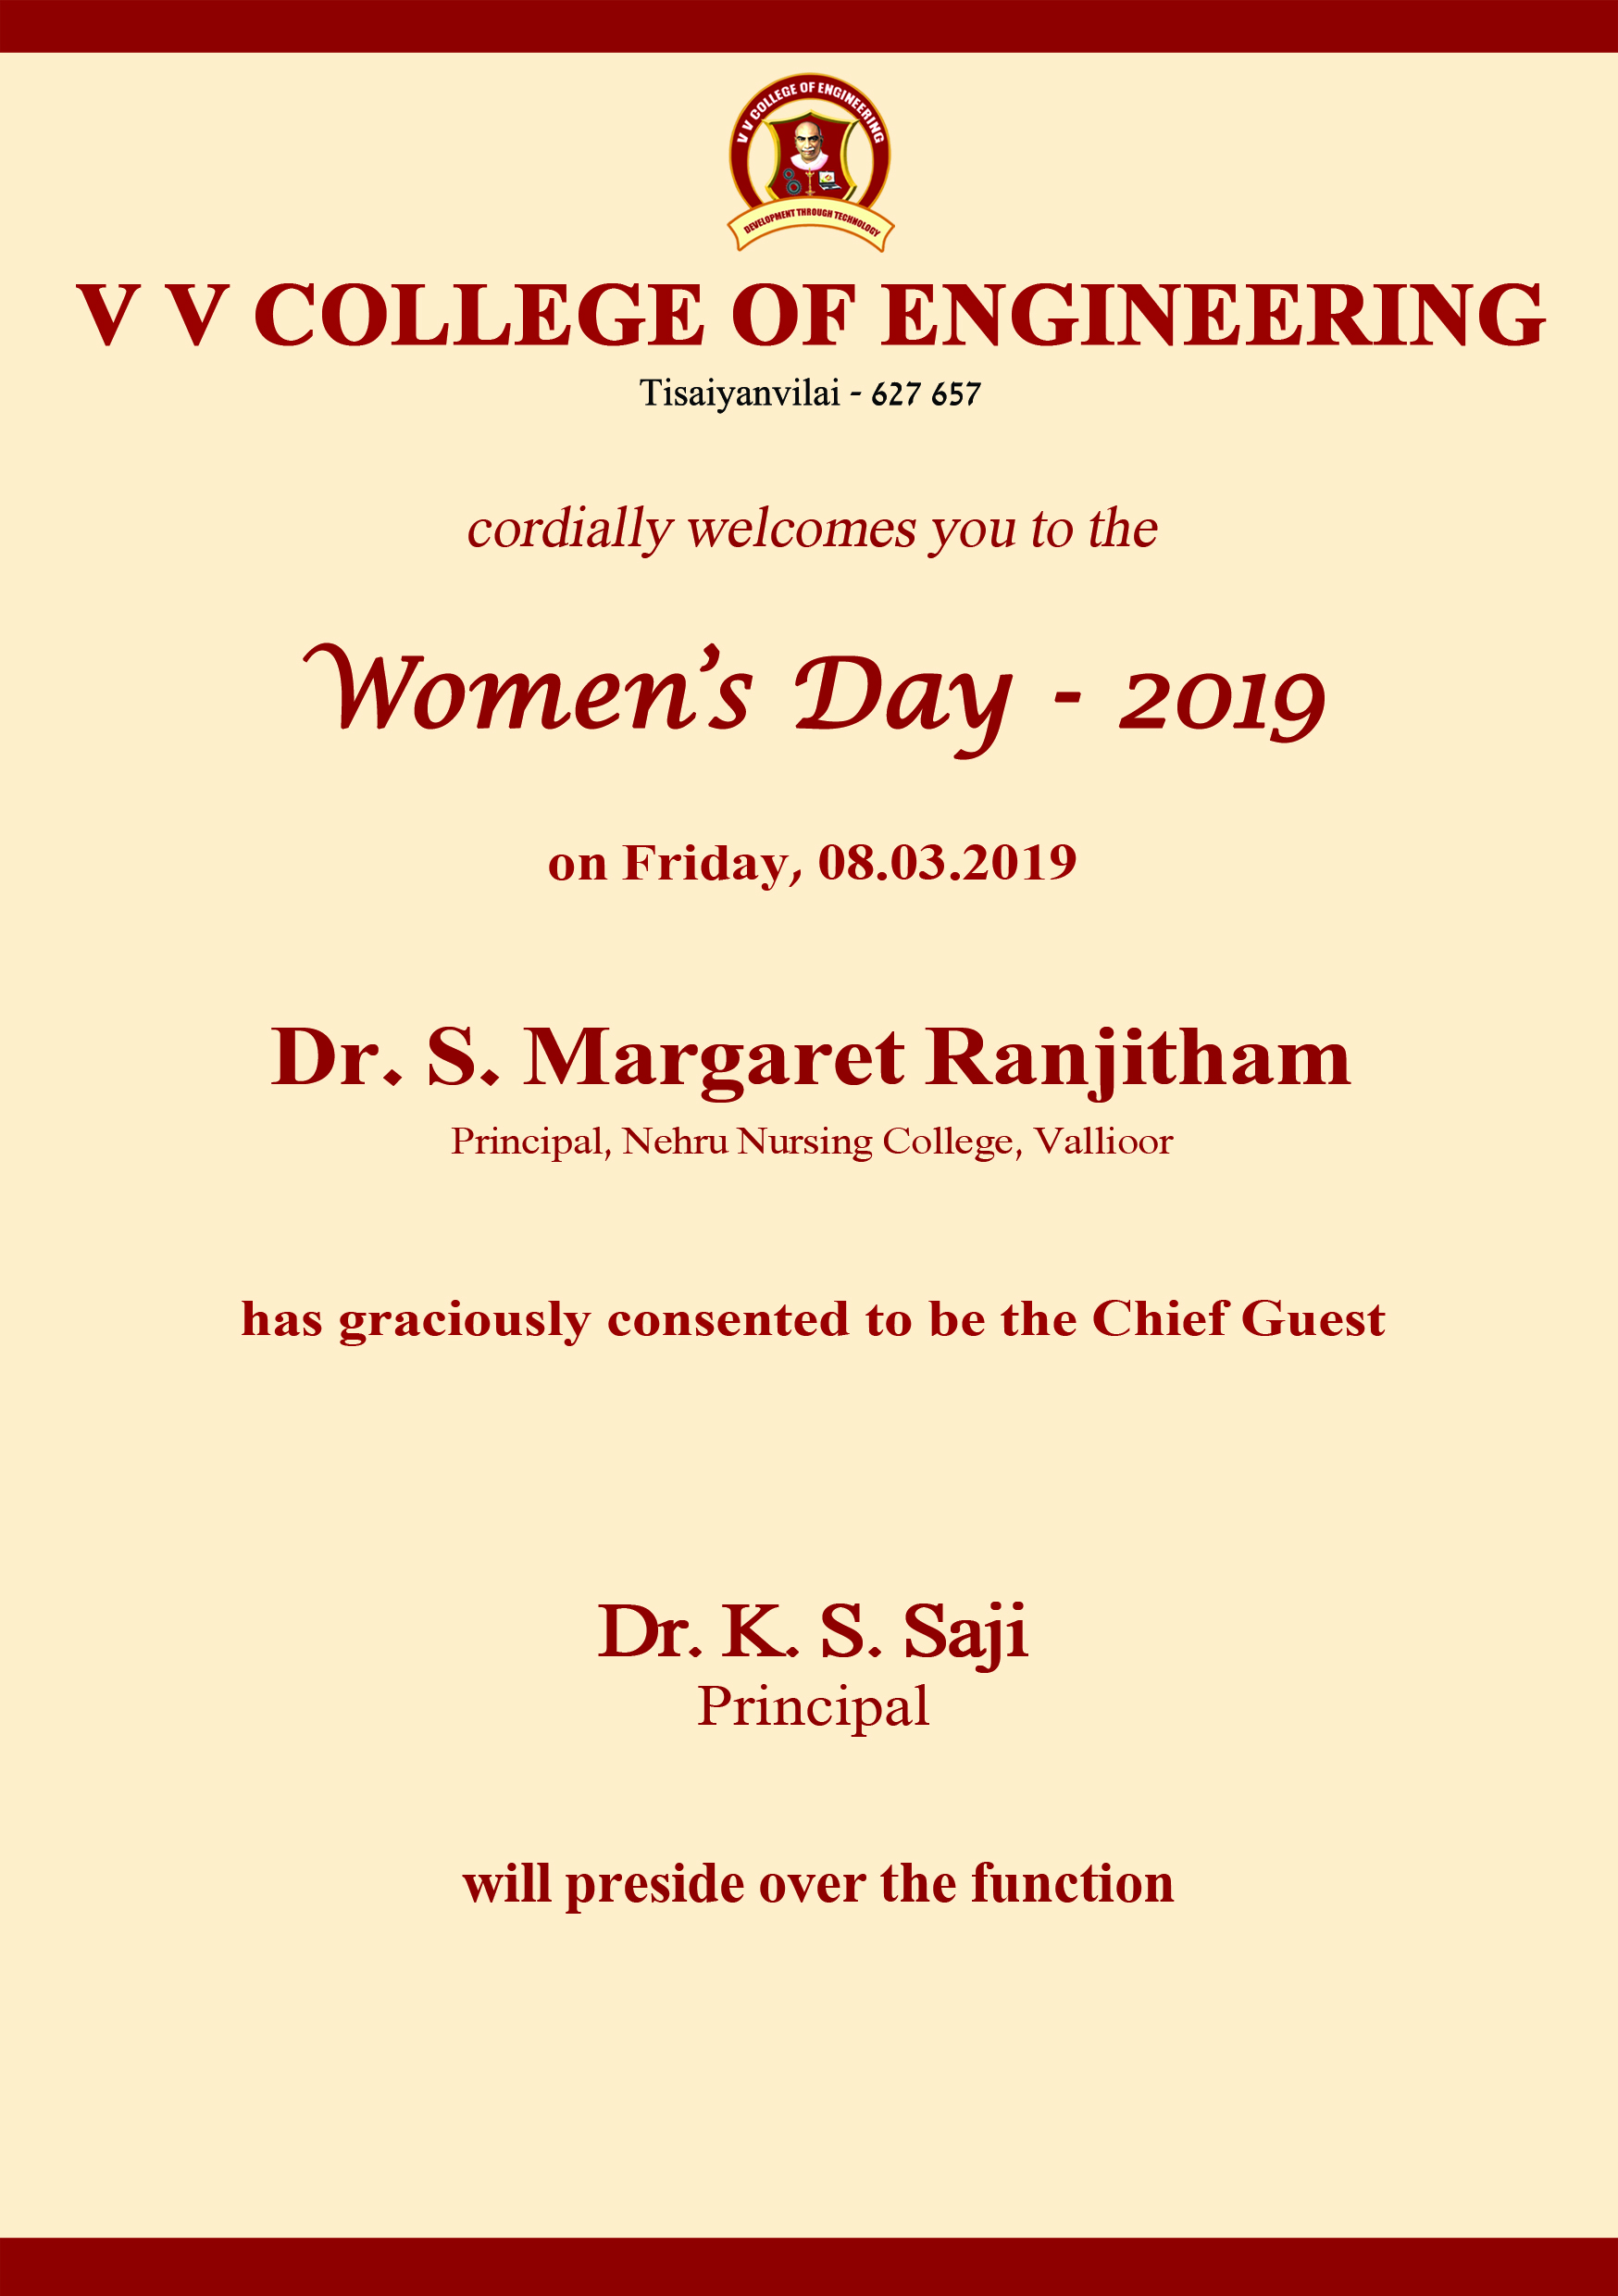 VV College proudly celebrates Women's Day 2019 on 8th March